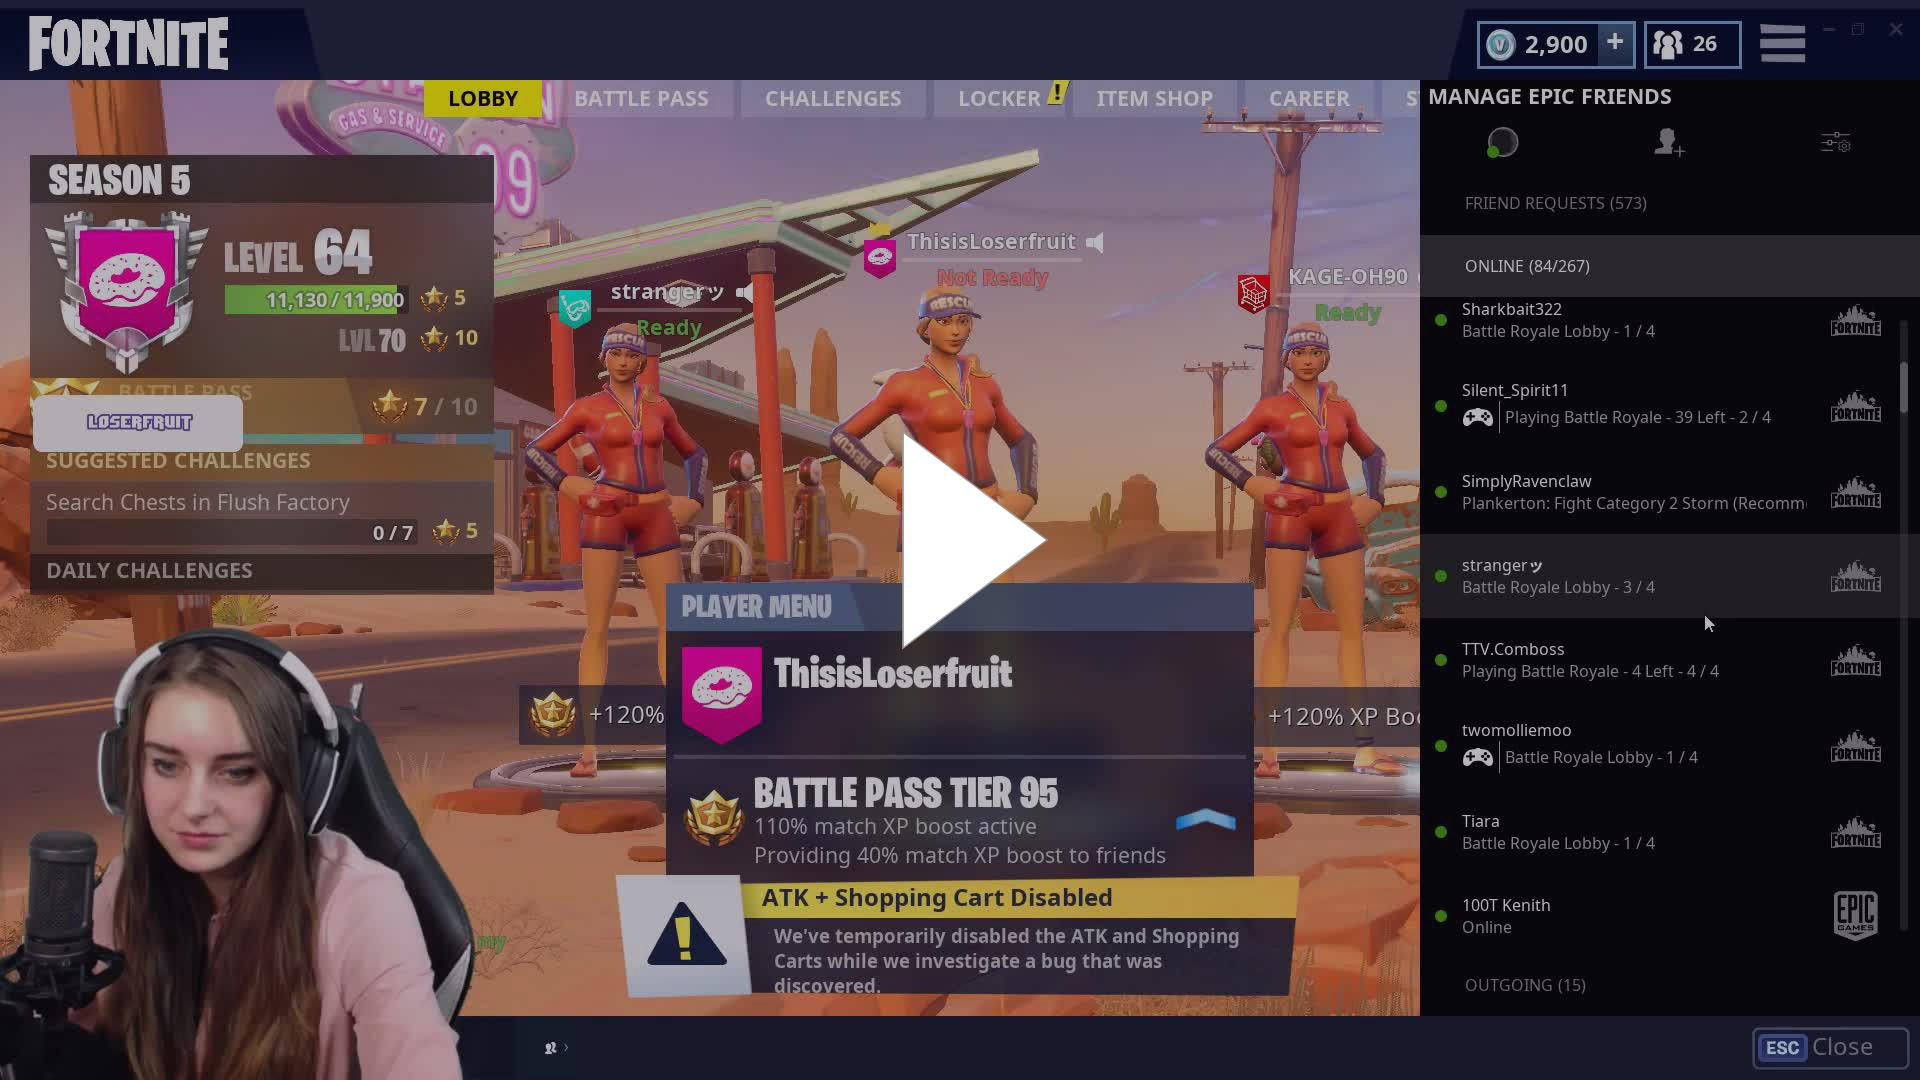 Tilting Lufu because gamertag is different from Epic name fruitFeels